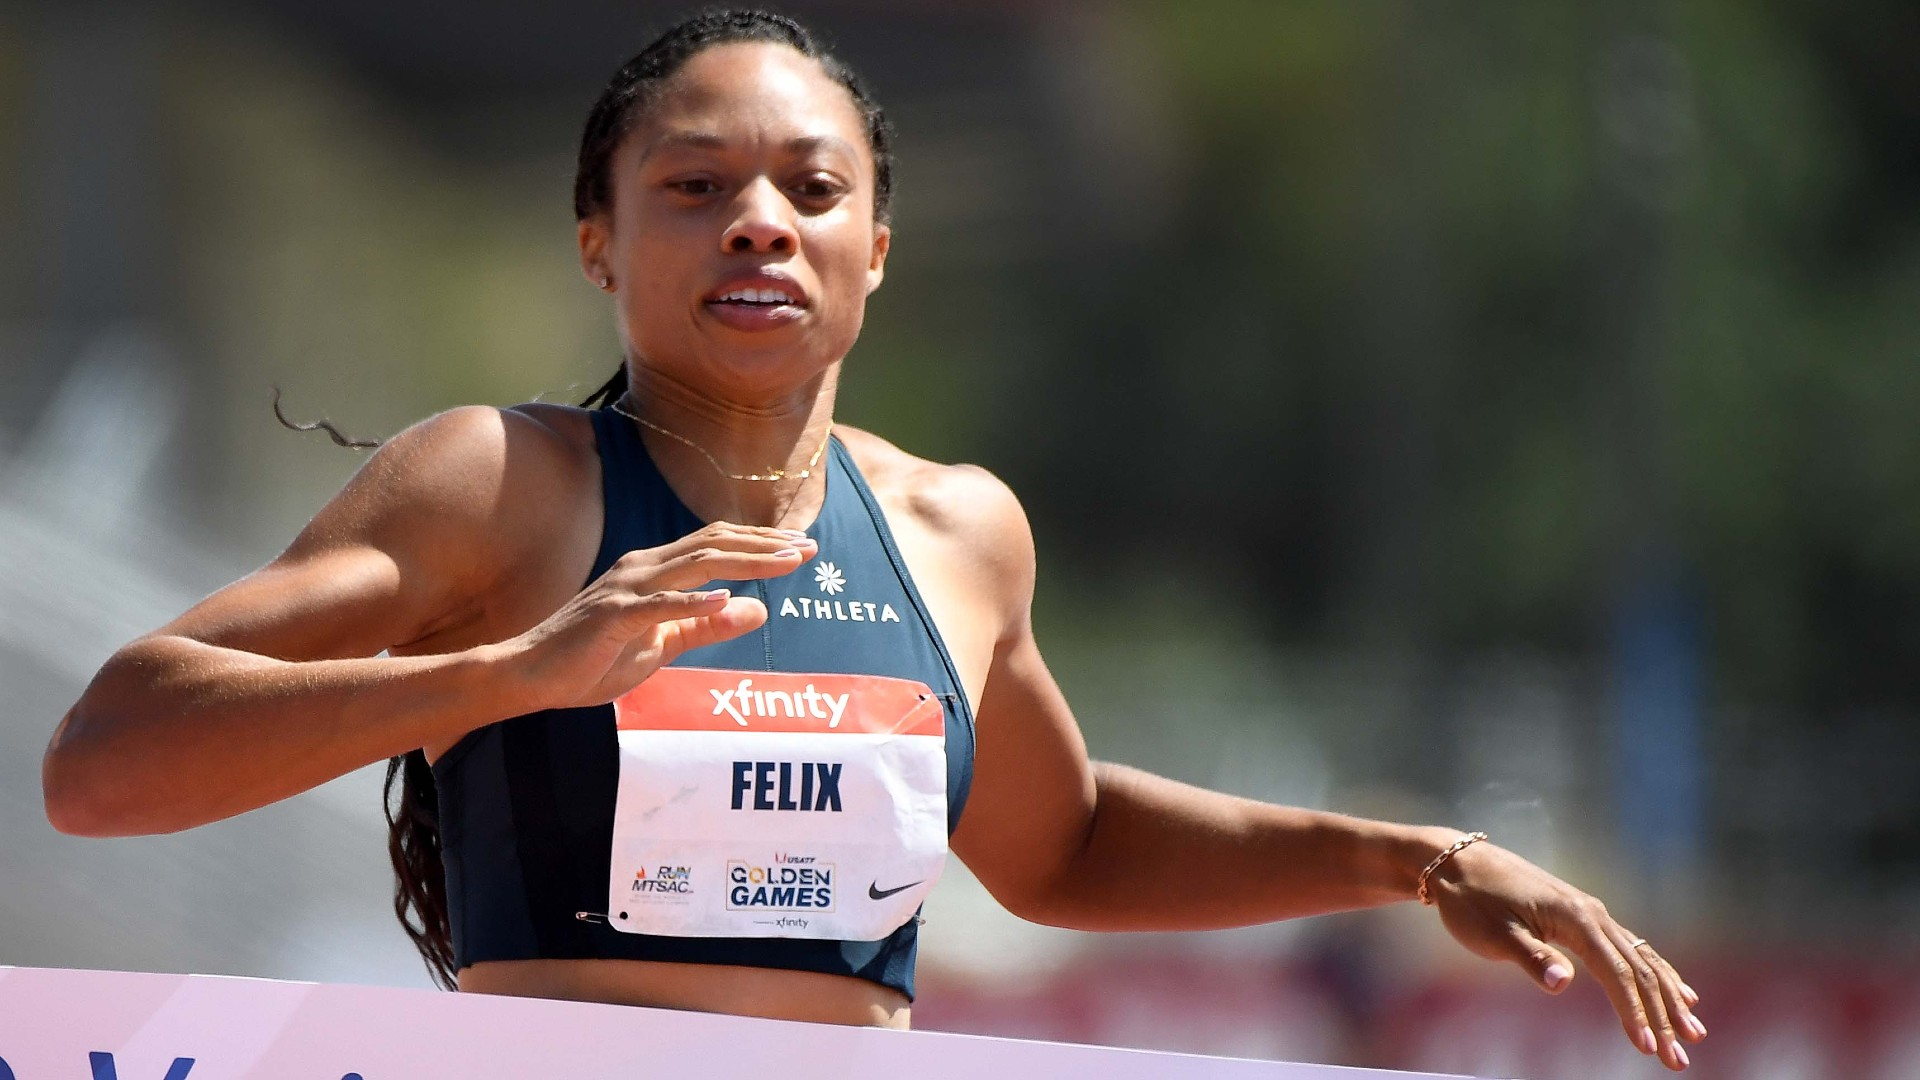 Allyson Felix launches her own shoe company, Saysh, two years after parting ways with Nike